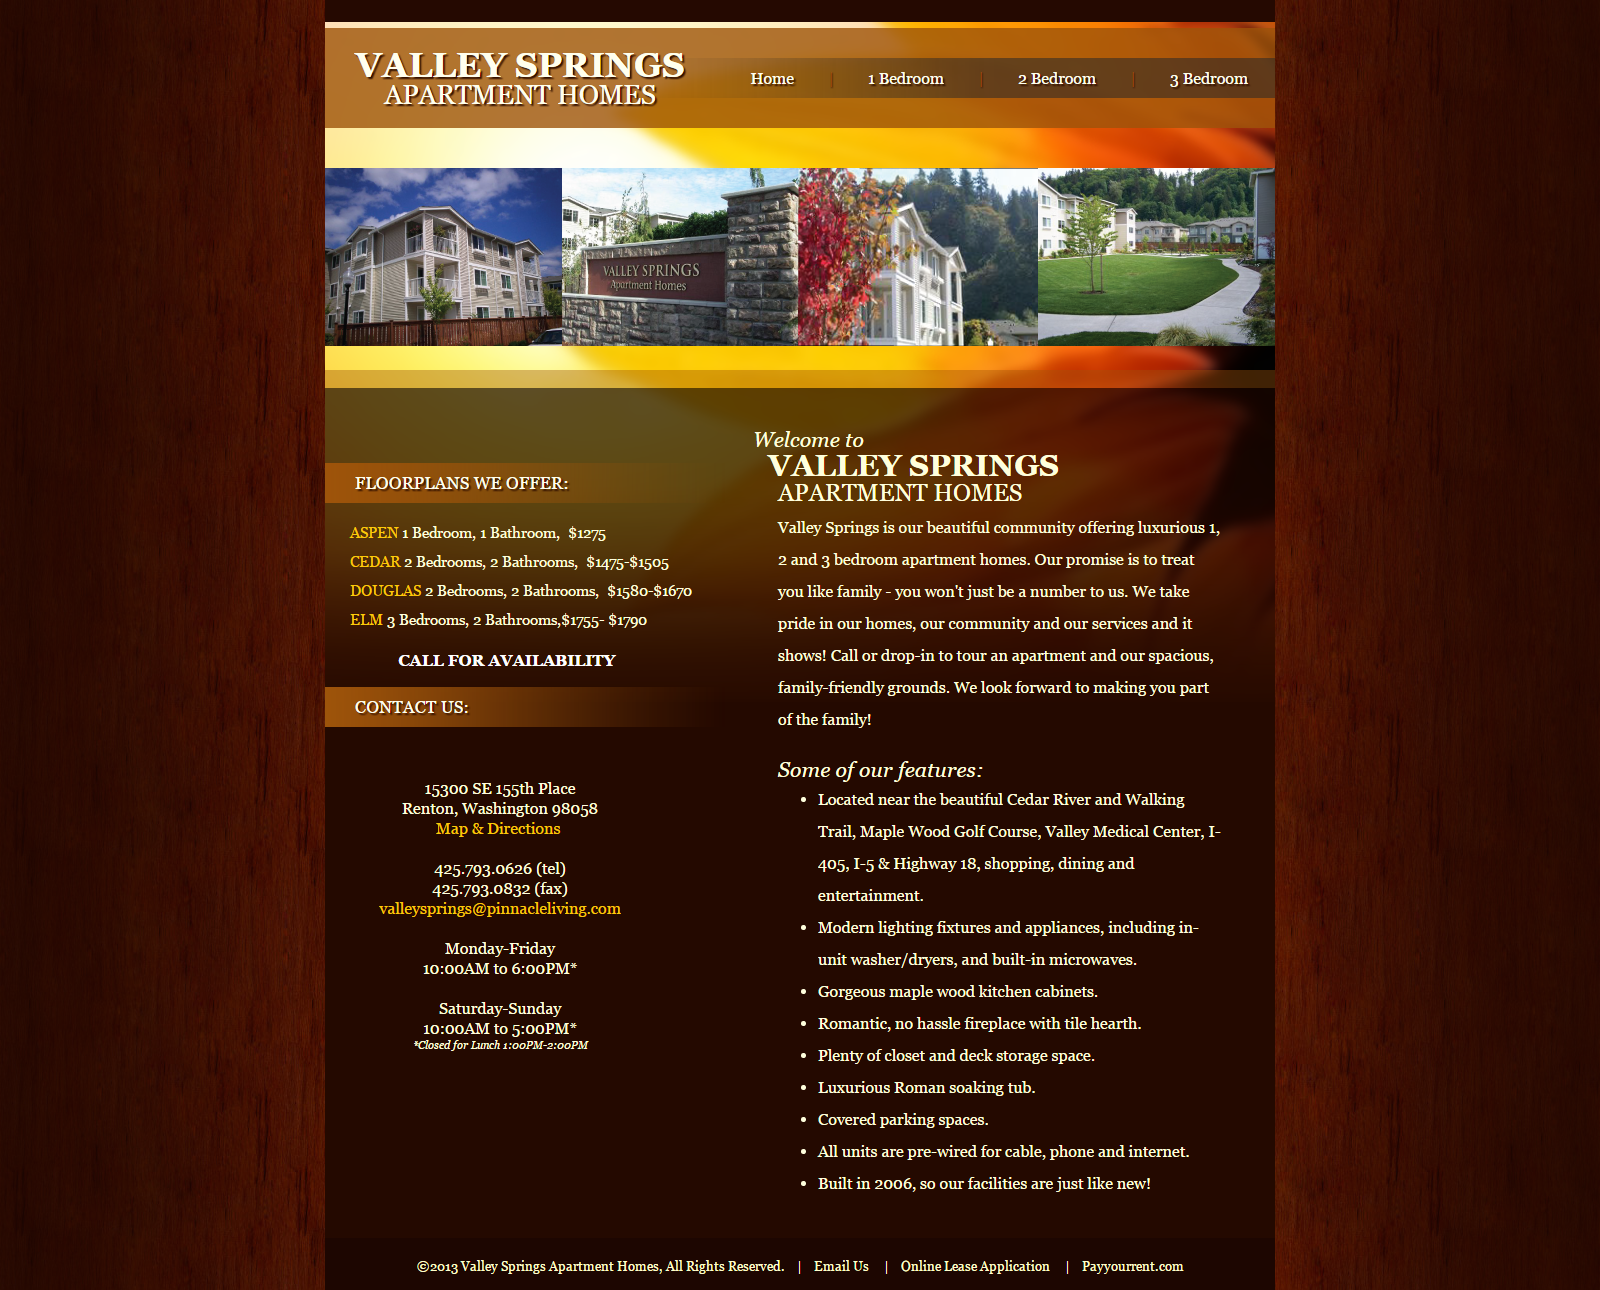 Valley Springs Apartment Homes